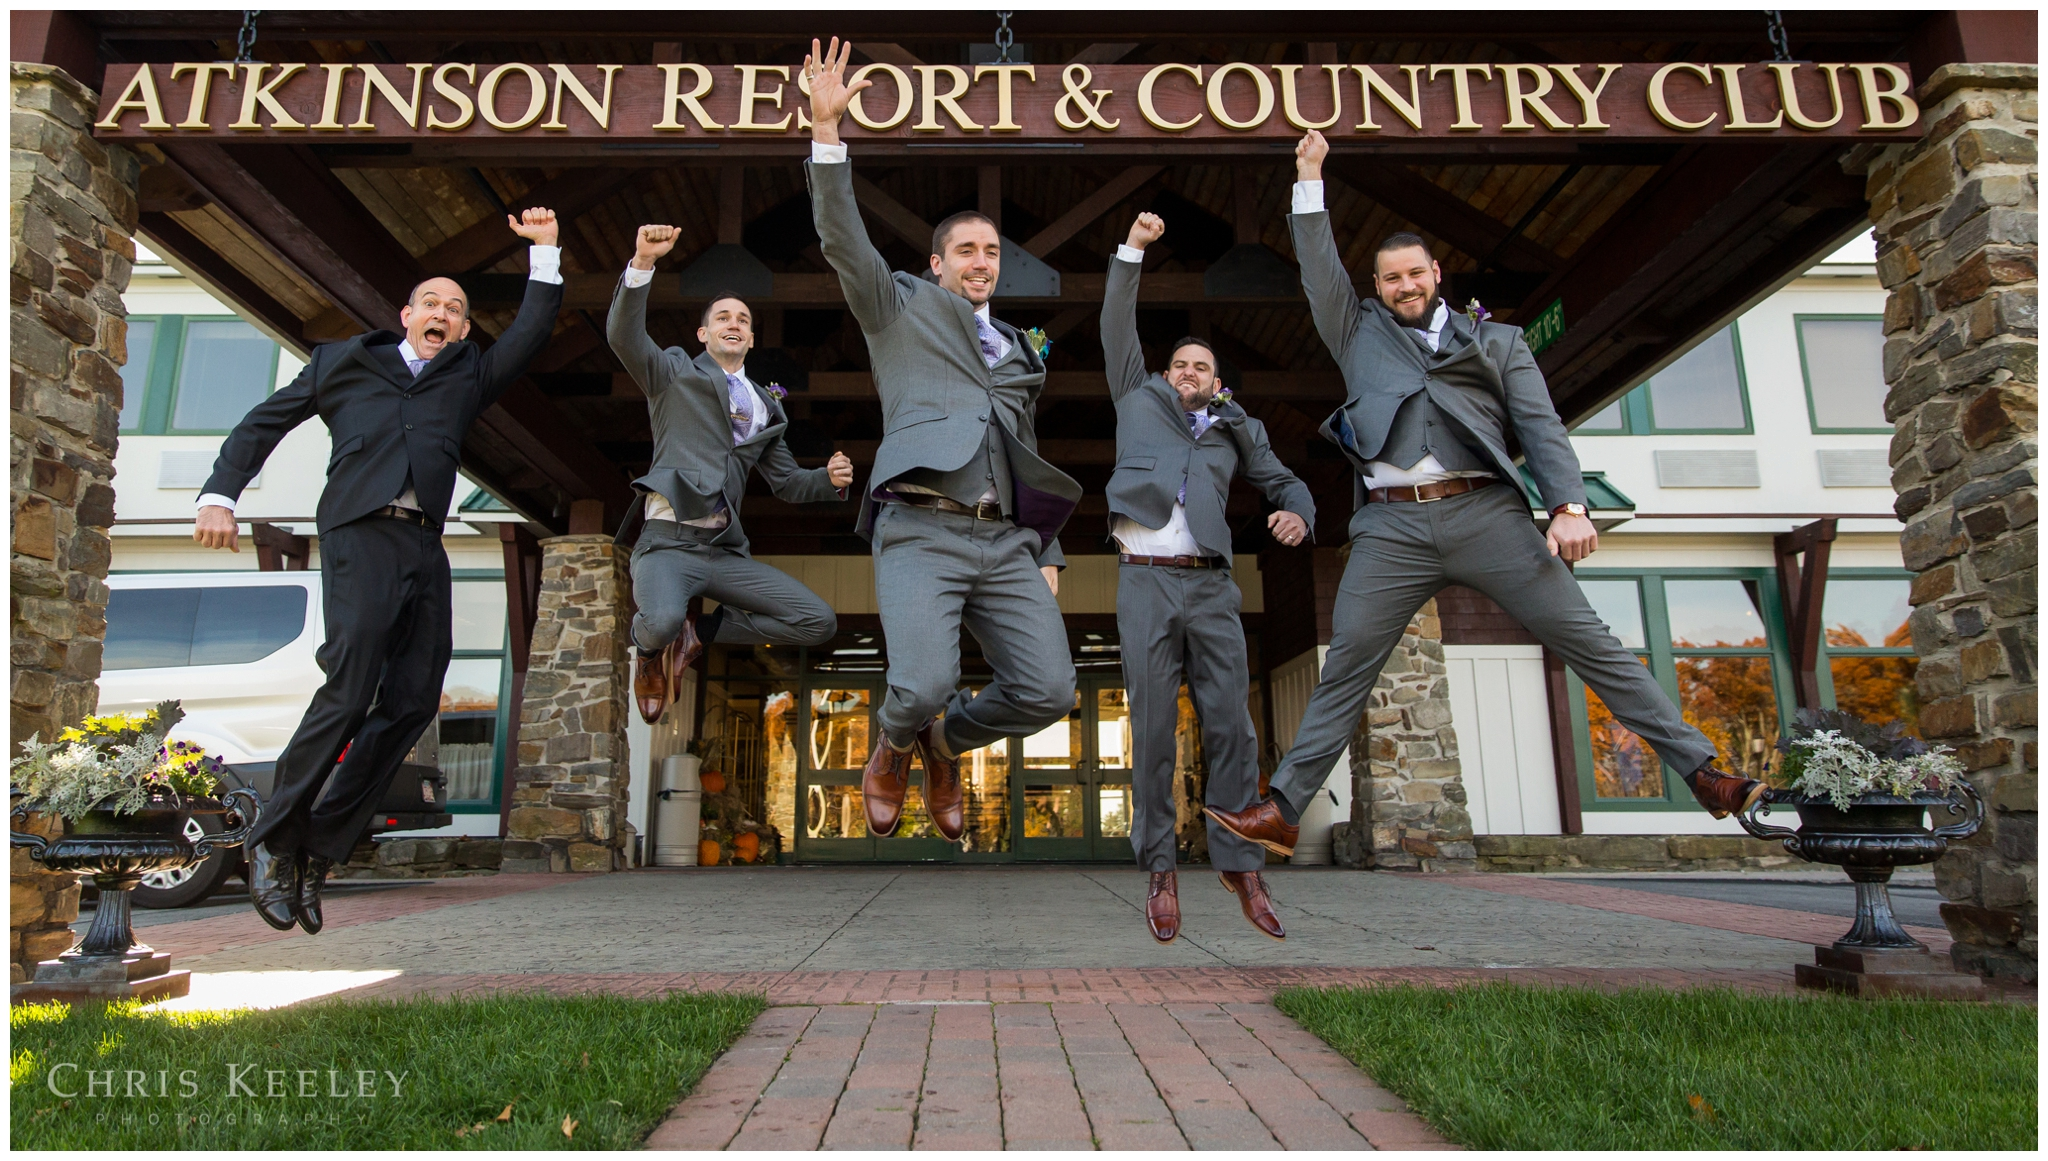 groomsmen-atkinson-country-club-wedding-photography-candace-jim.jpg